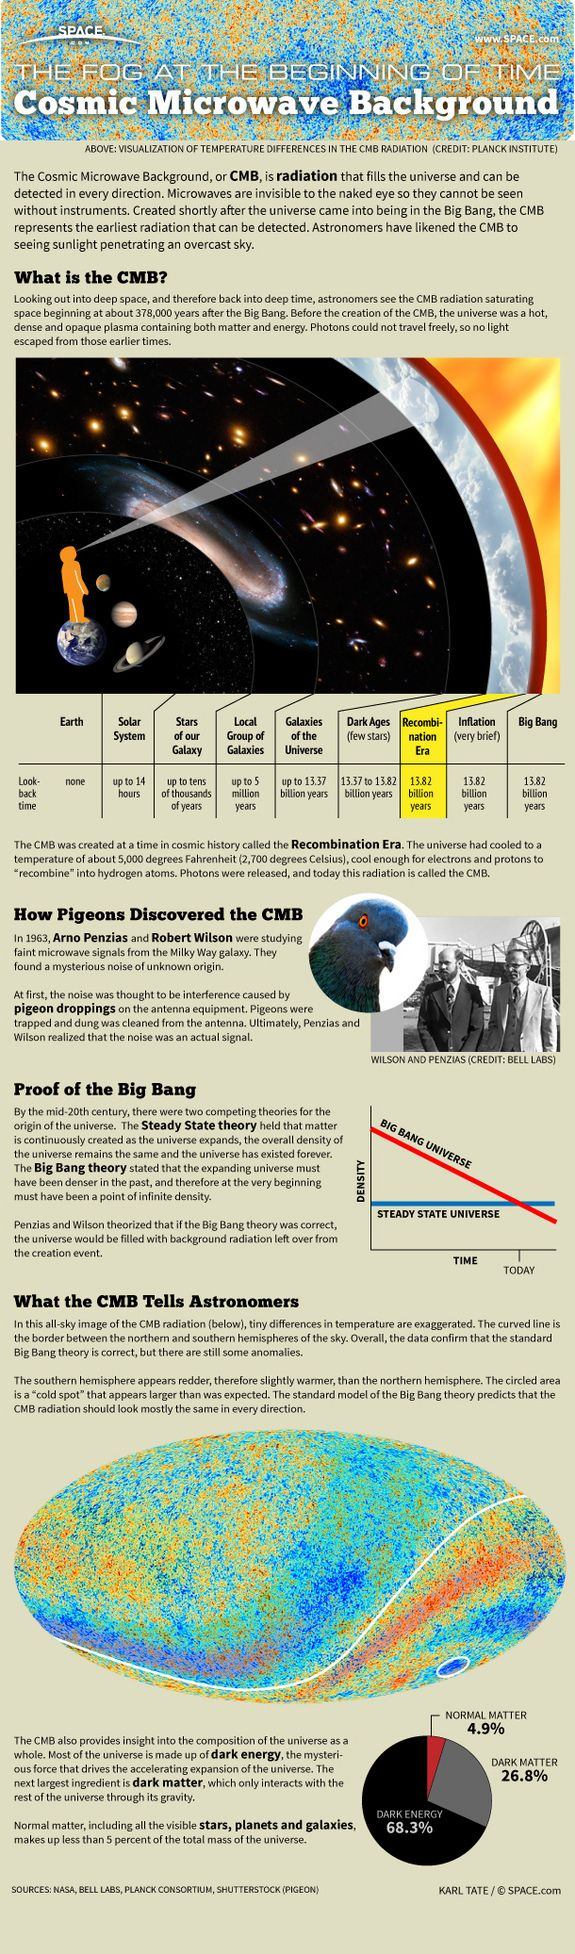 How the Cosmic Microwave Background Radiation Reveals the Secrets of the Universe (Infographic)